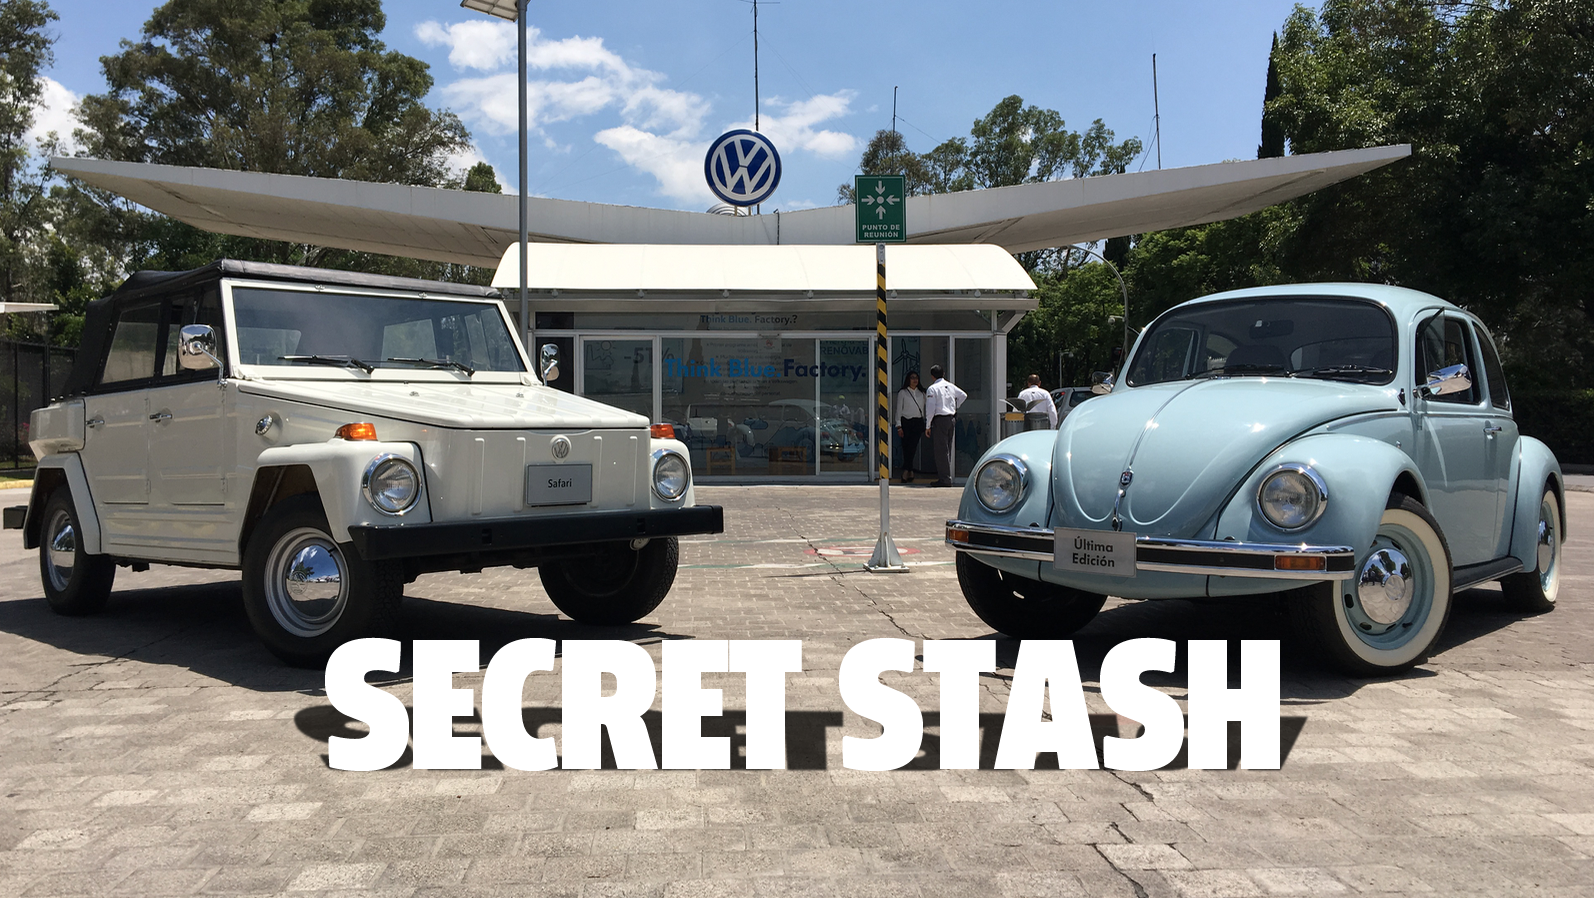 I Finally Got To See Volkswagen Of Mexico's Secret Car Collection